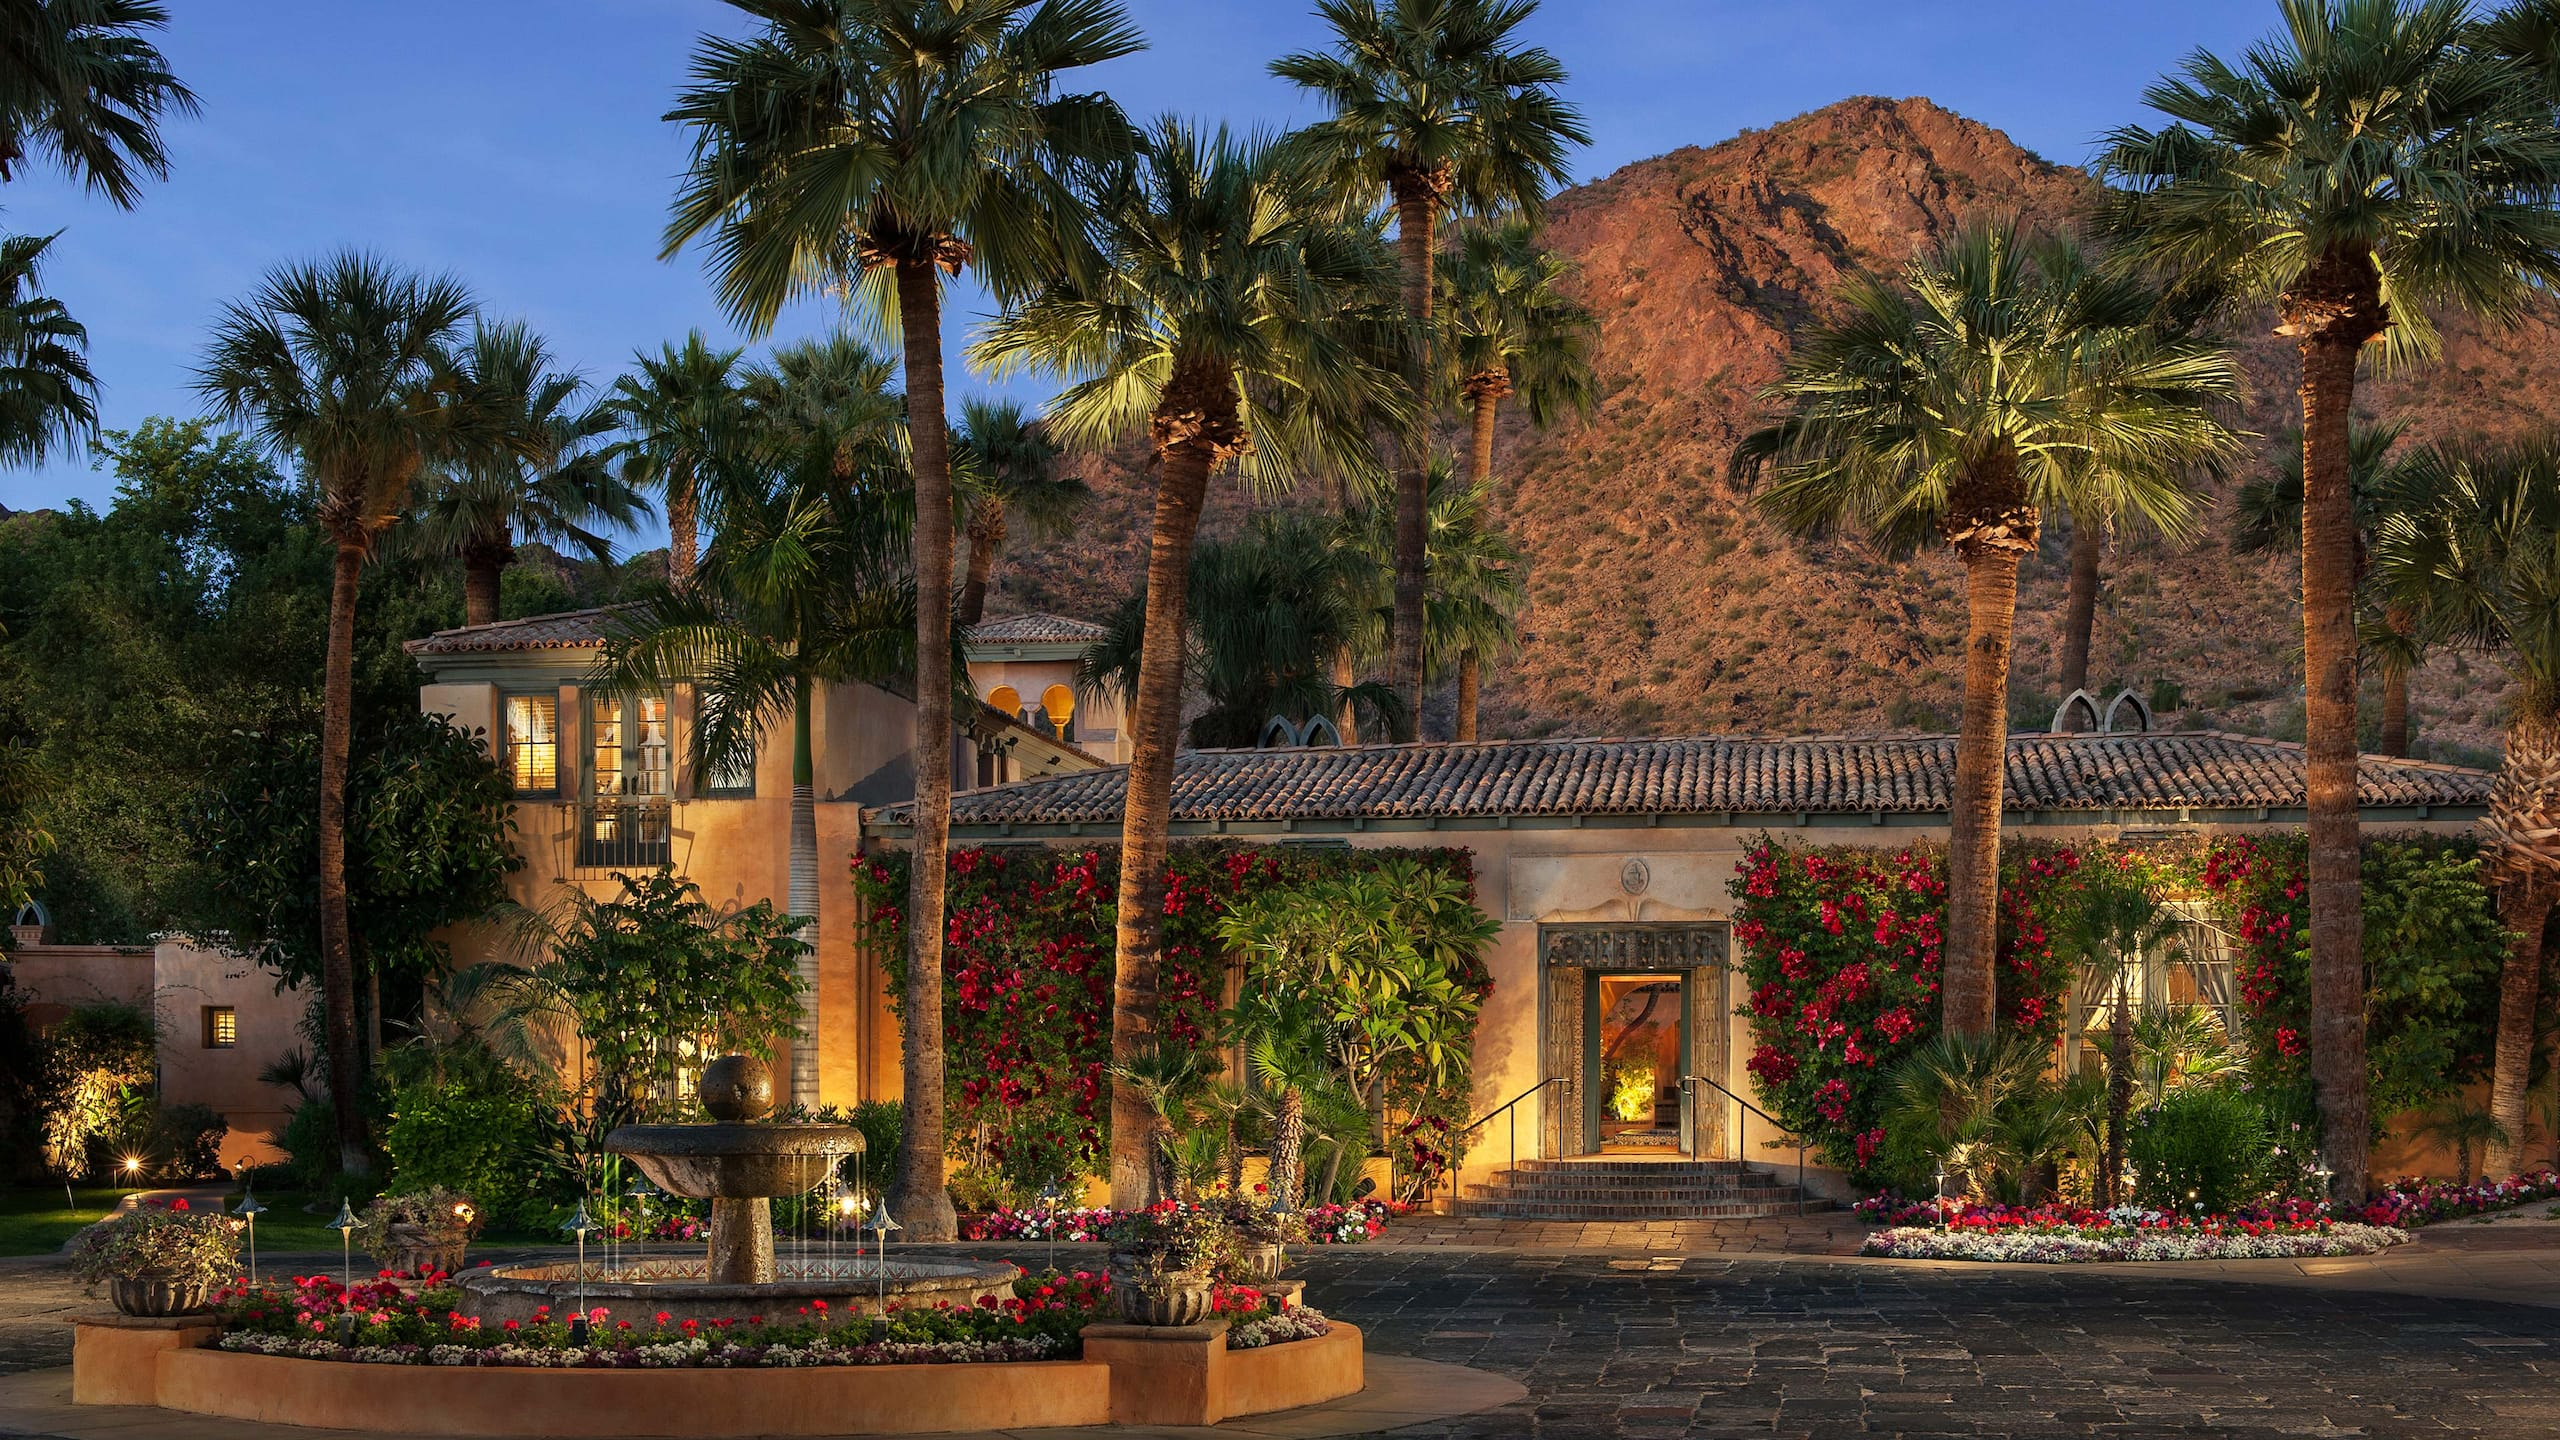 Luxury Resort in Scottsdale AZ  Royal Palms Resort and Spa